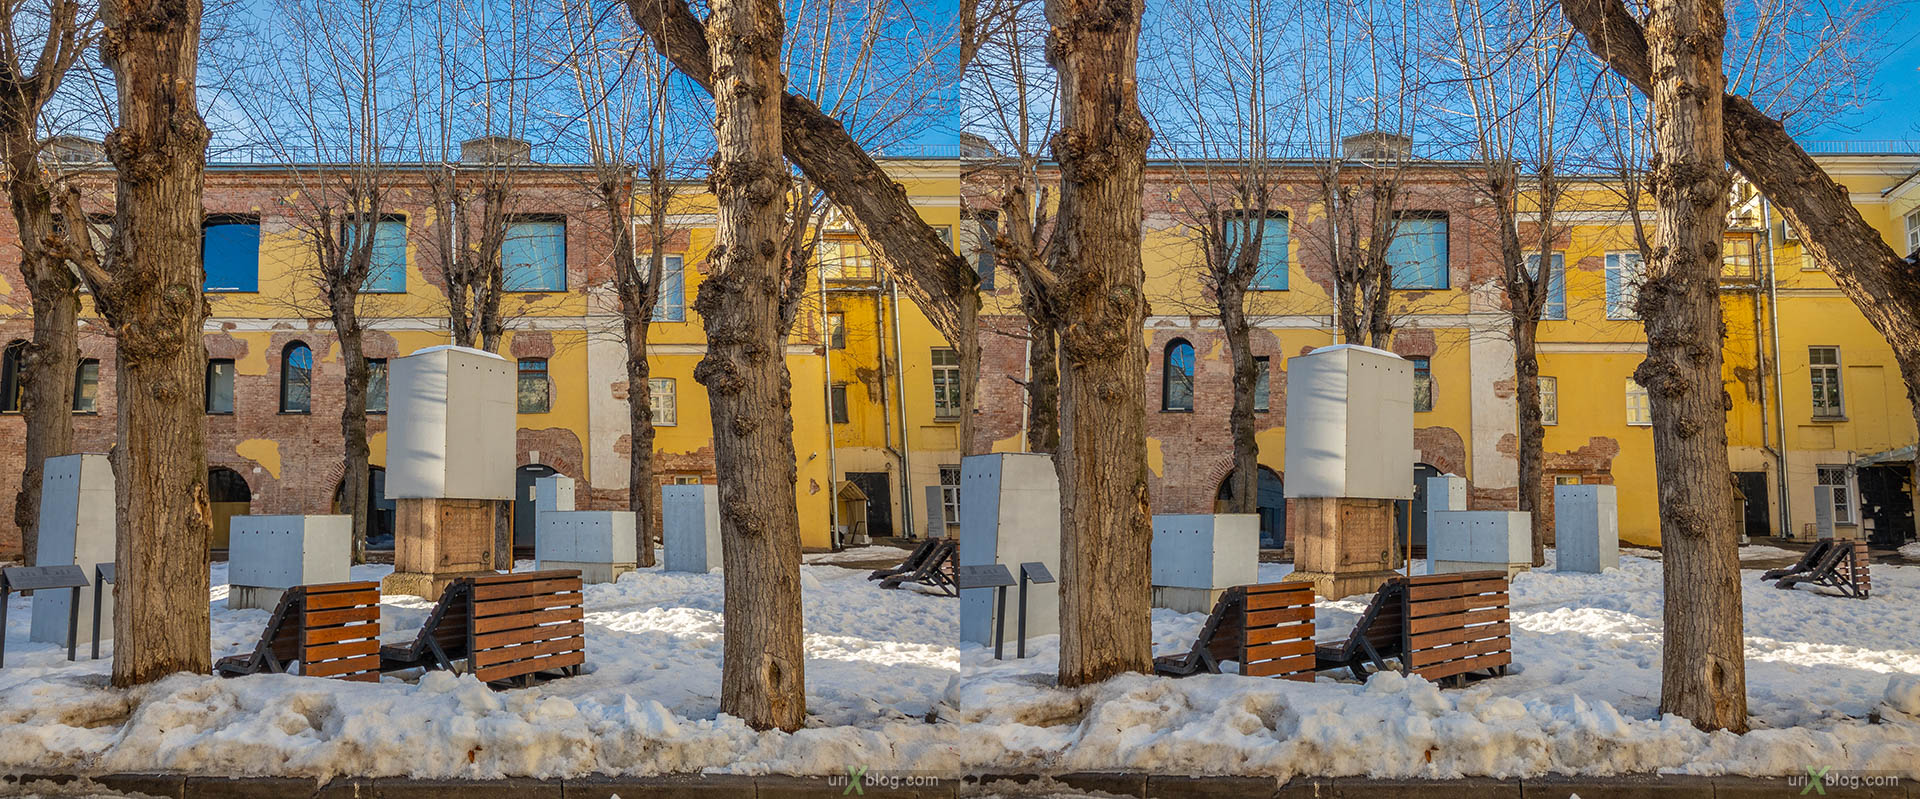 Architecture Museum, Moscow, Russia, 3D, stereo pair, cross-eyed, crossview, cross view stereo pair, stereoscopic